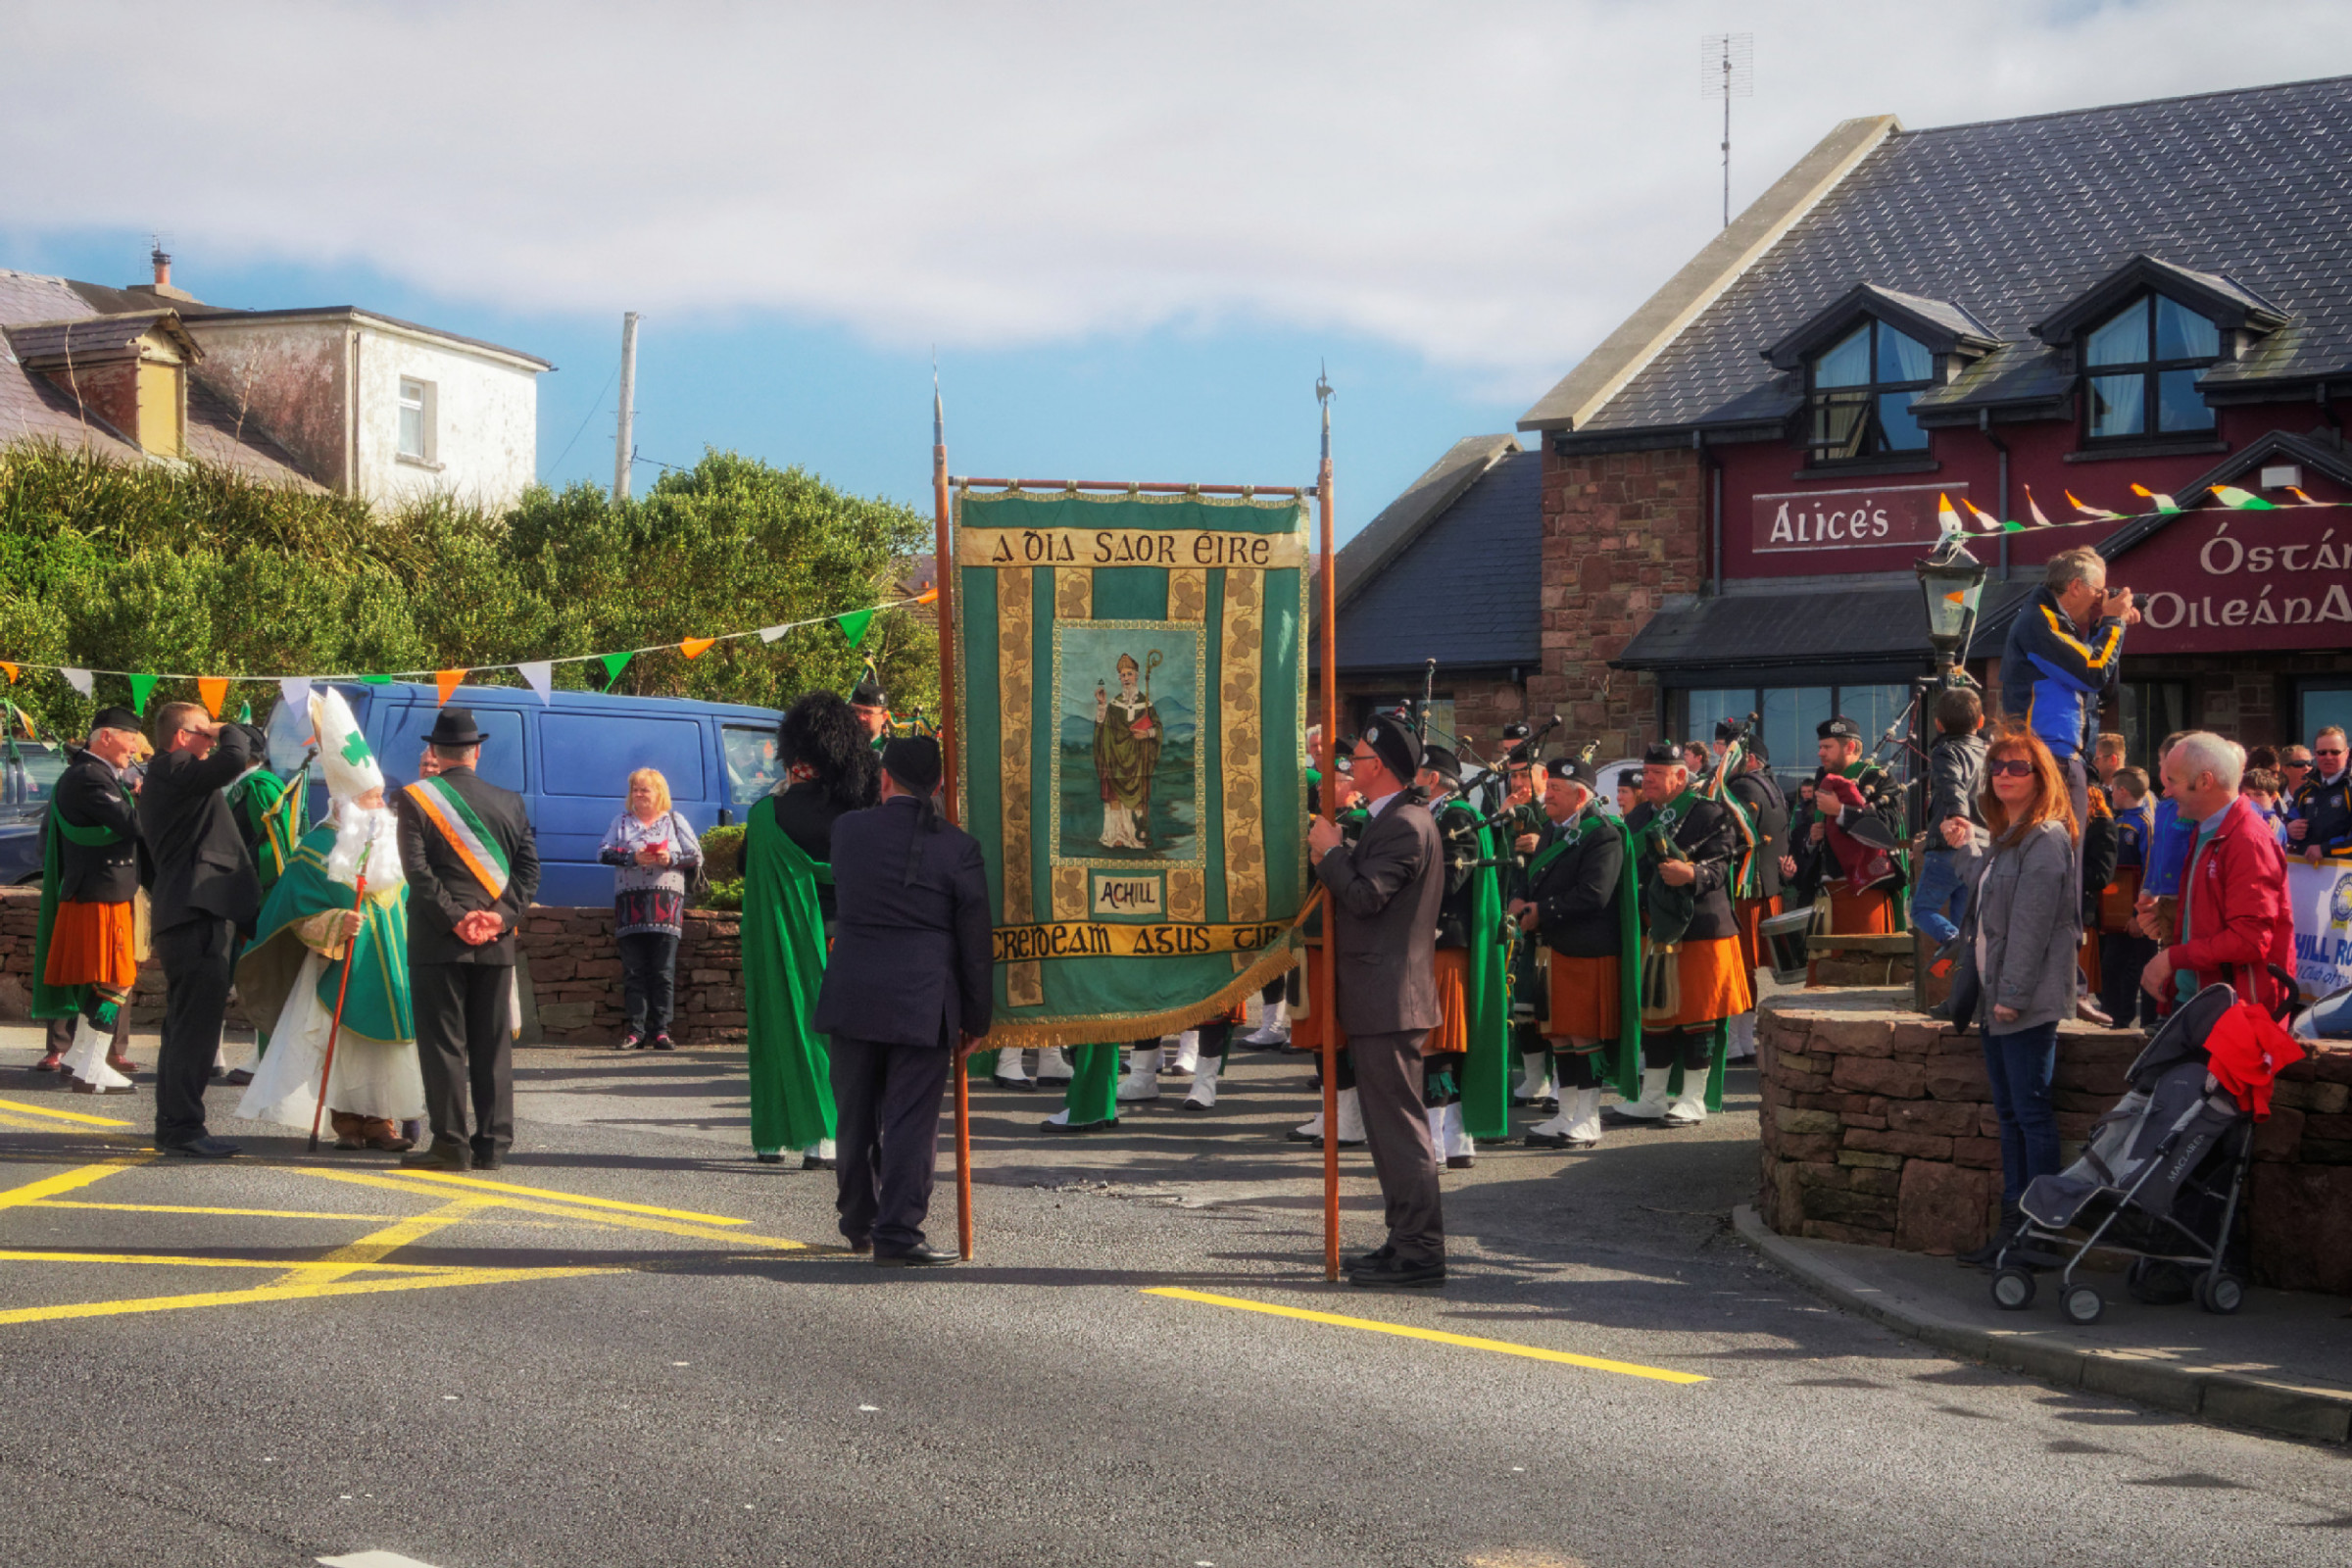 20160320125140-ie-achill-sound_parade-_DxO_13in_DxO96